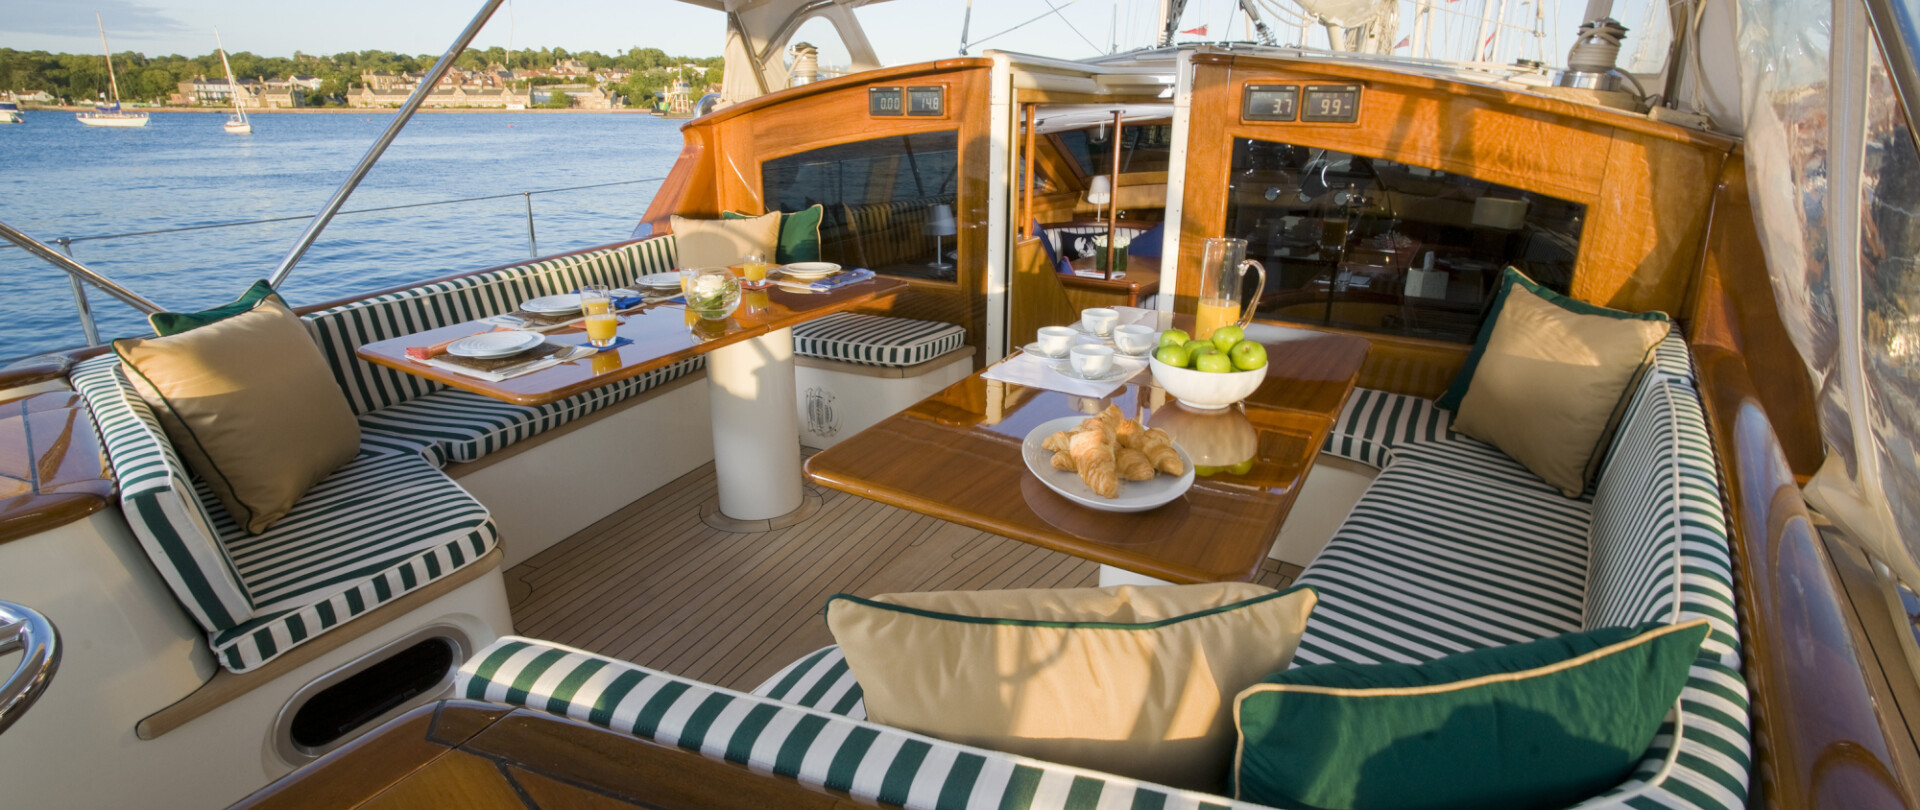 WHIRLWIND Available to Charter in the West Med photo 3